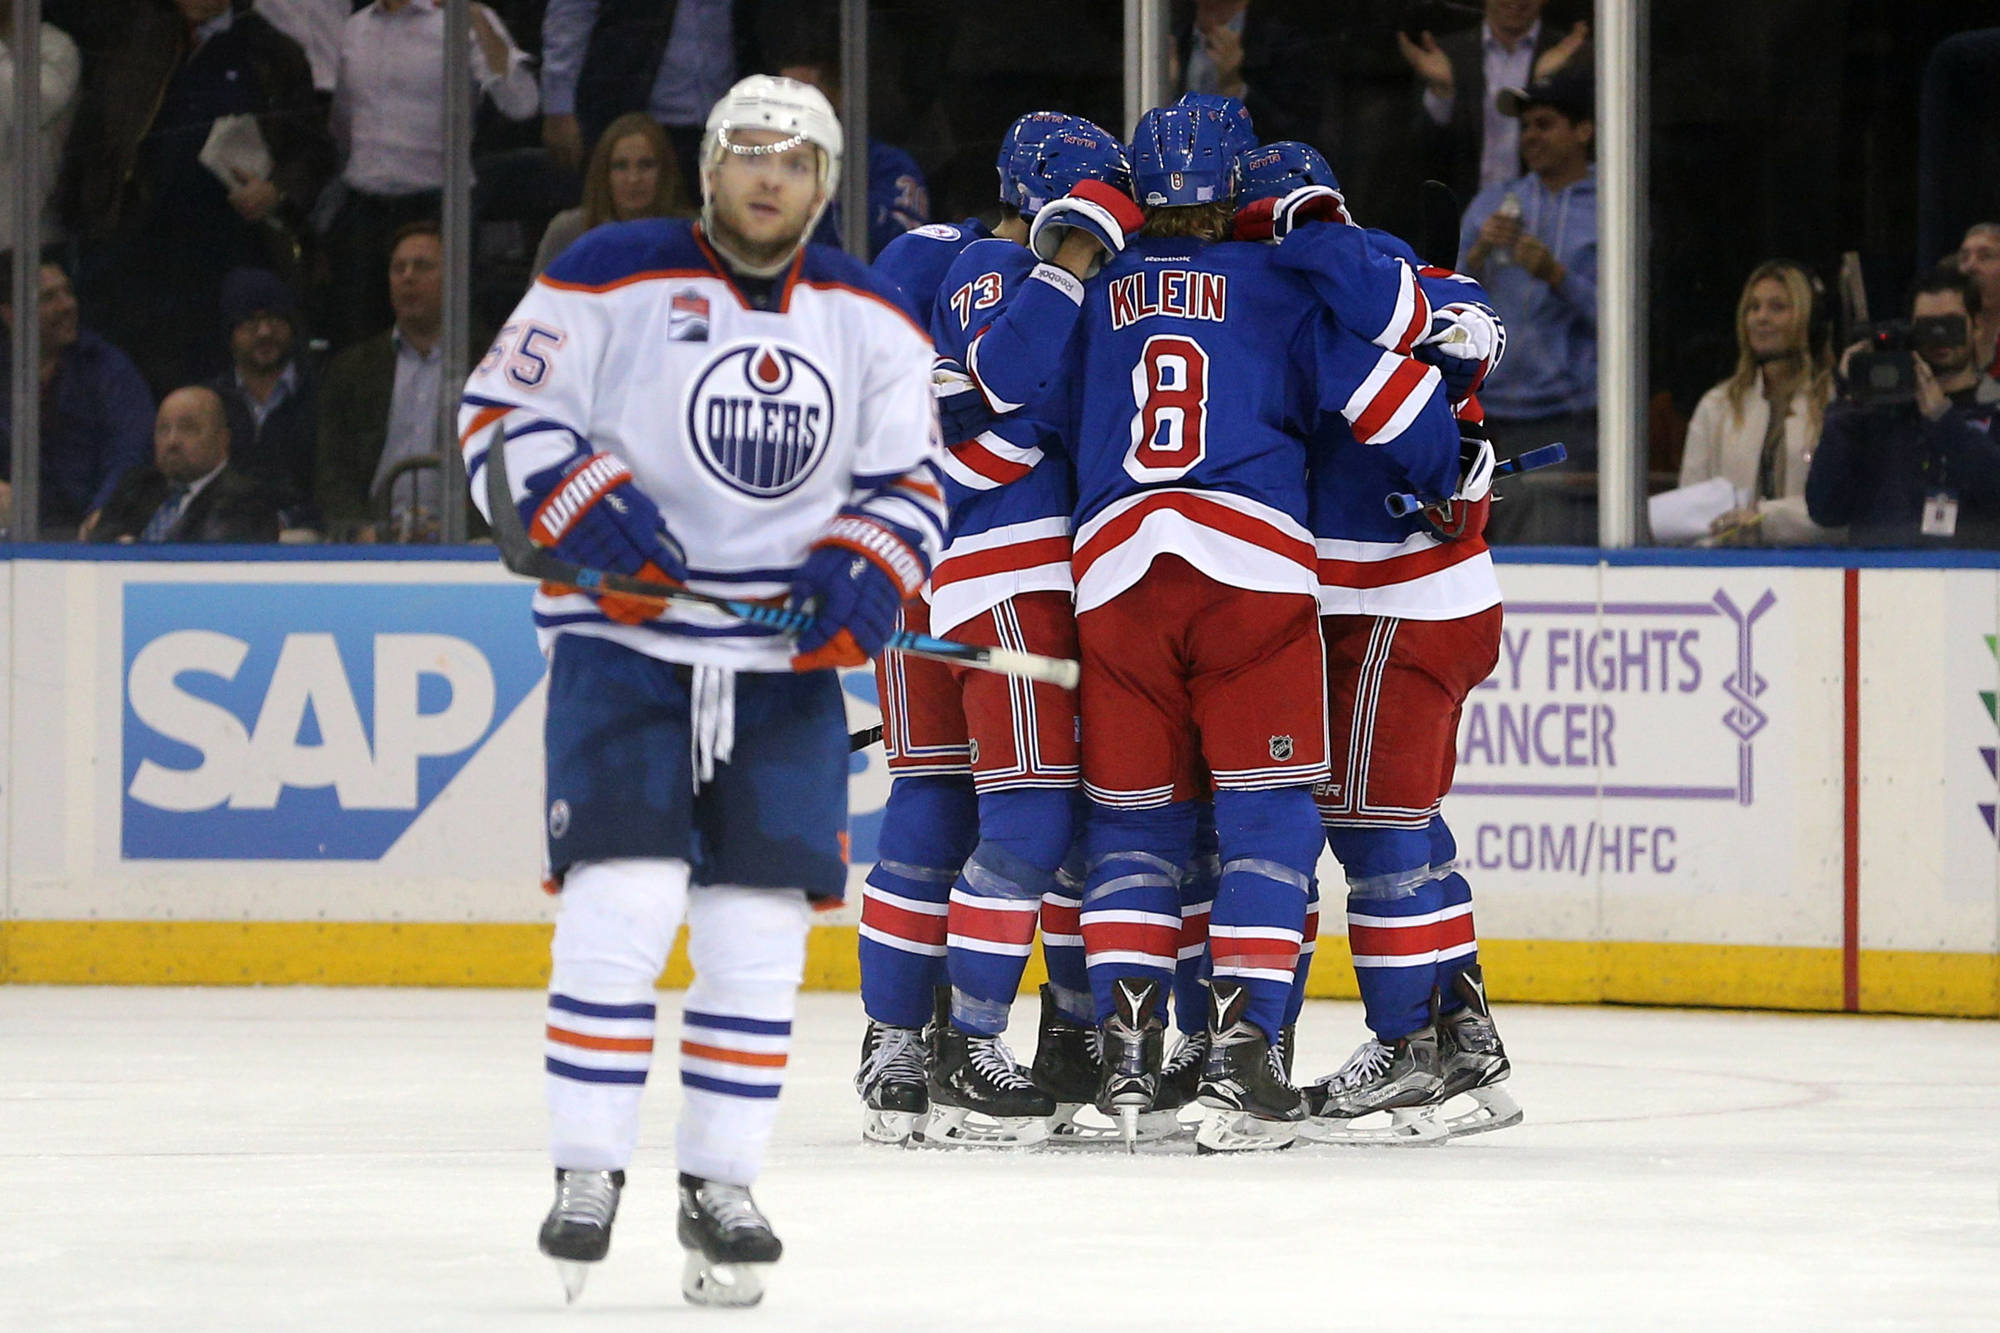 Rangers Playing With Something To Prove